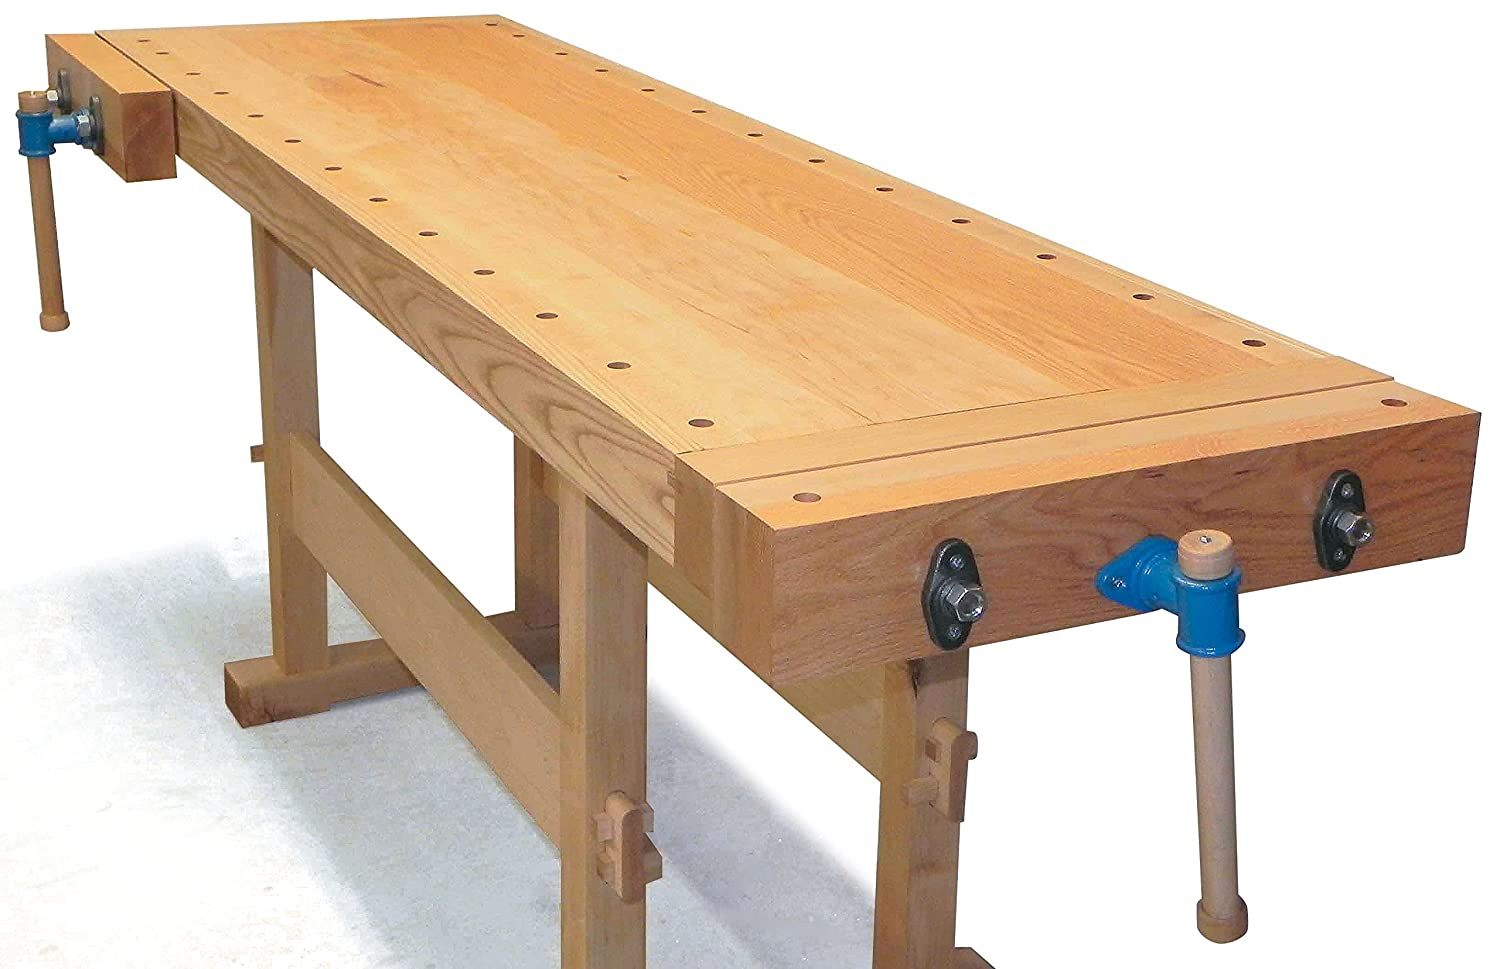 Superb Build Your Own Workbench Plan American Furniture Design Pdpeps Interior Chair Design Pdpepsorg